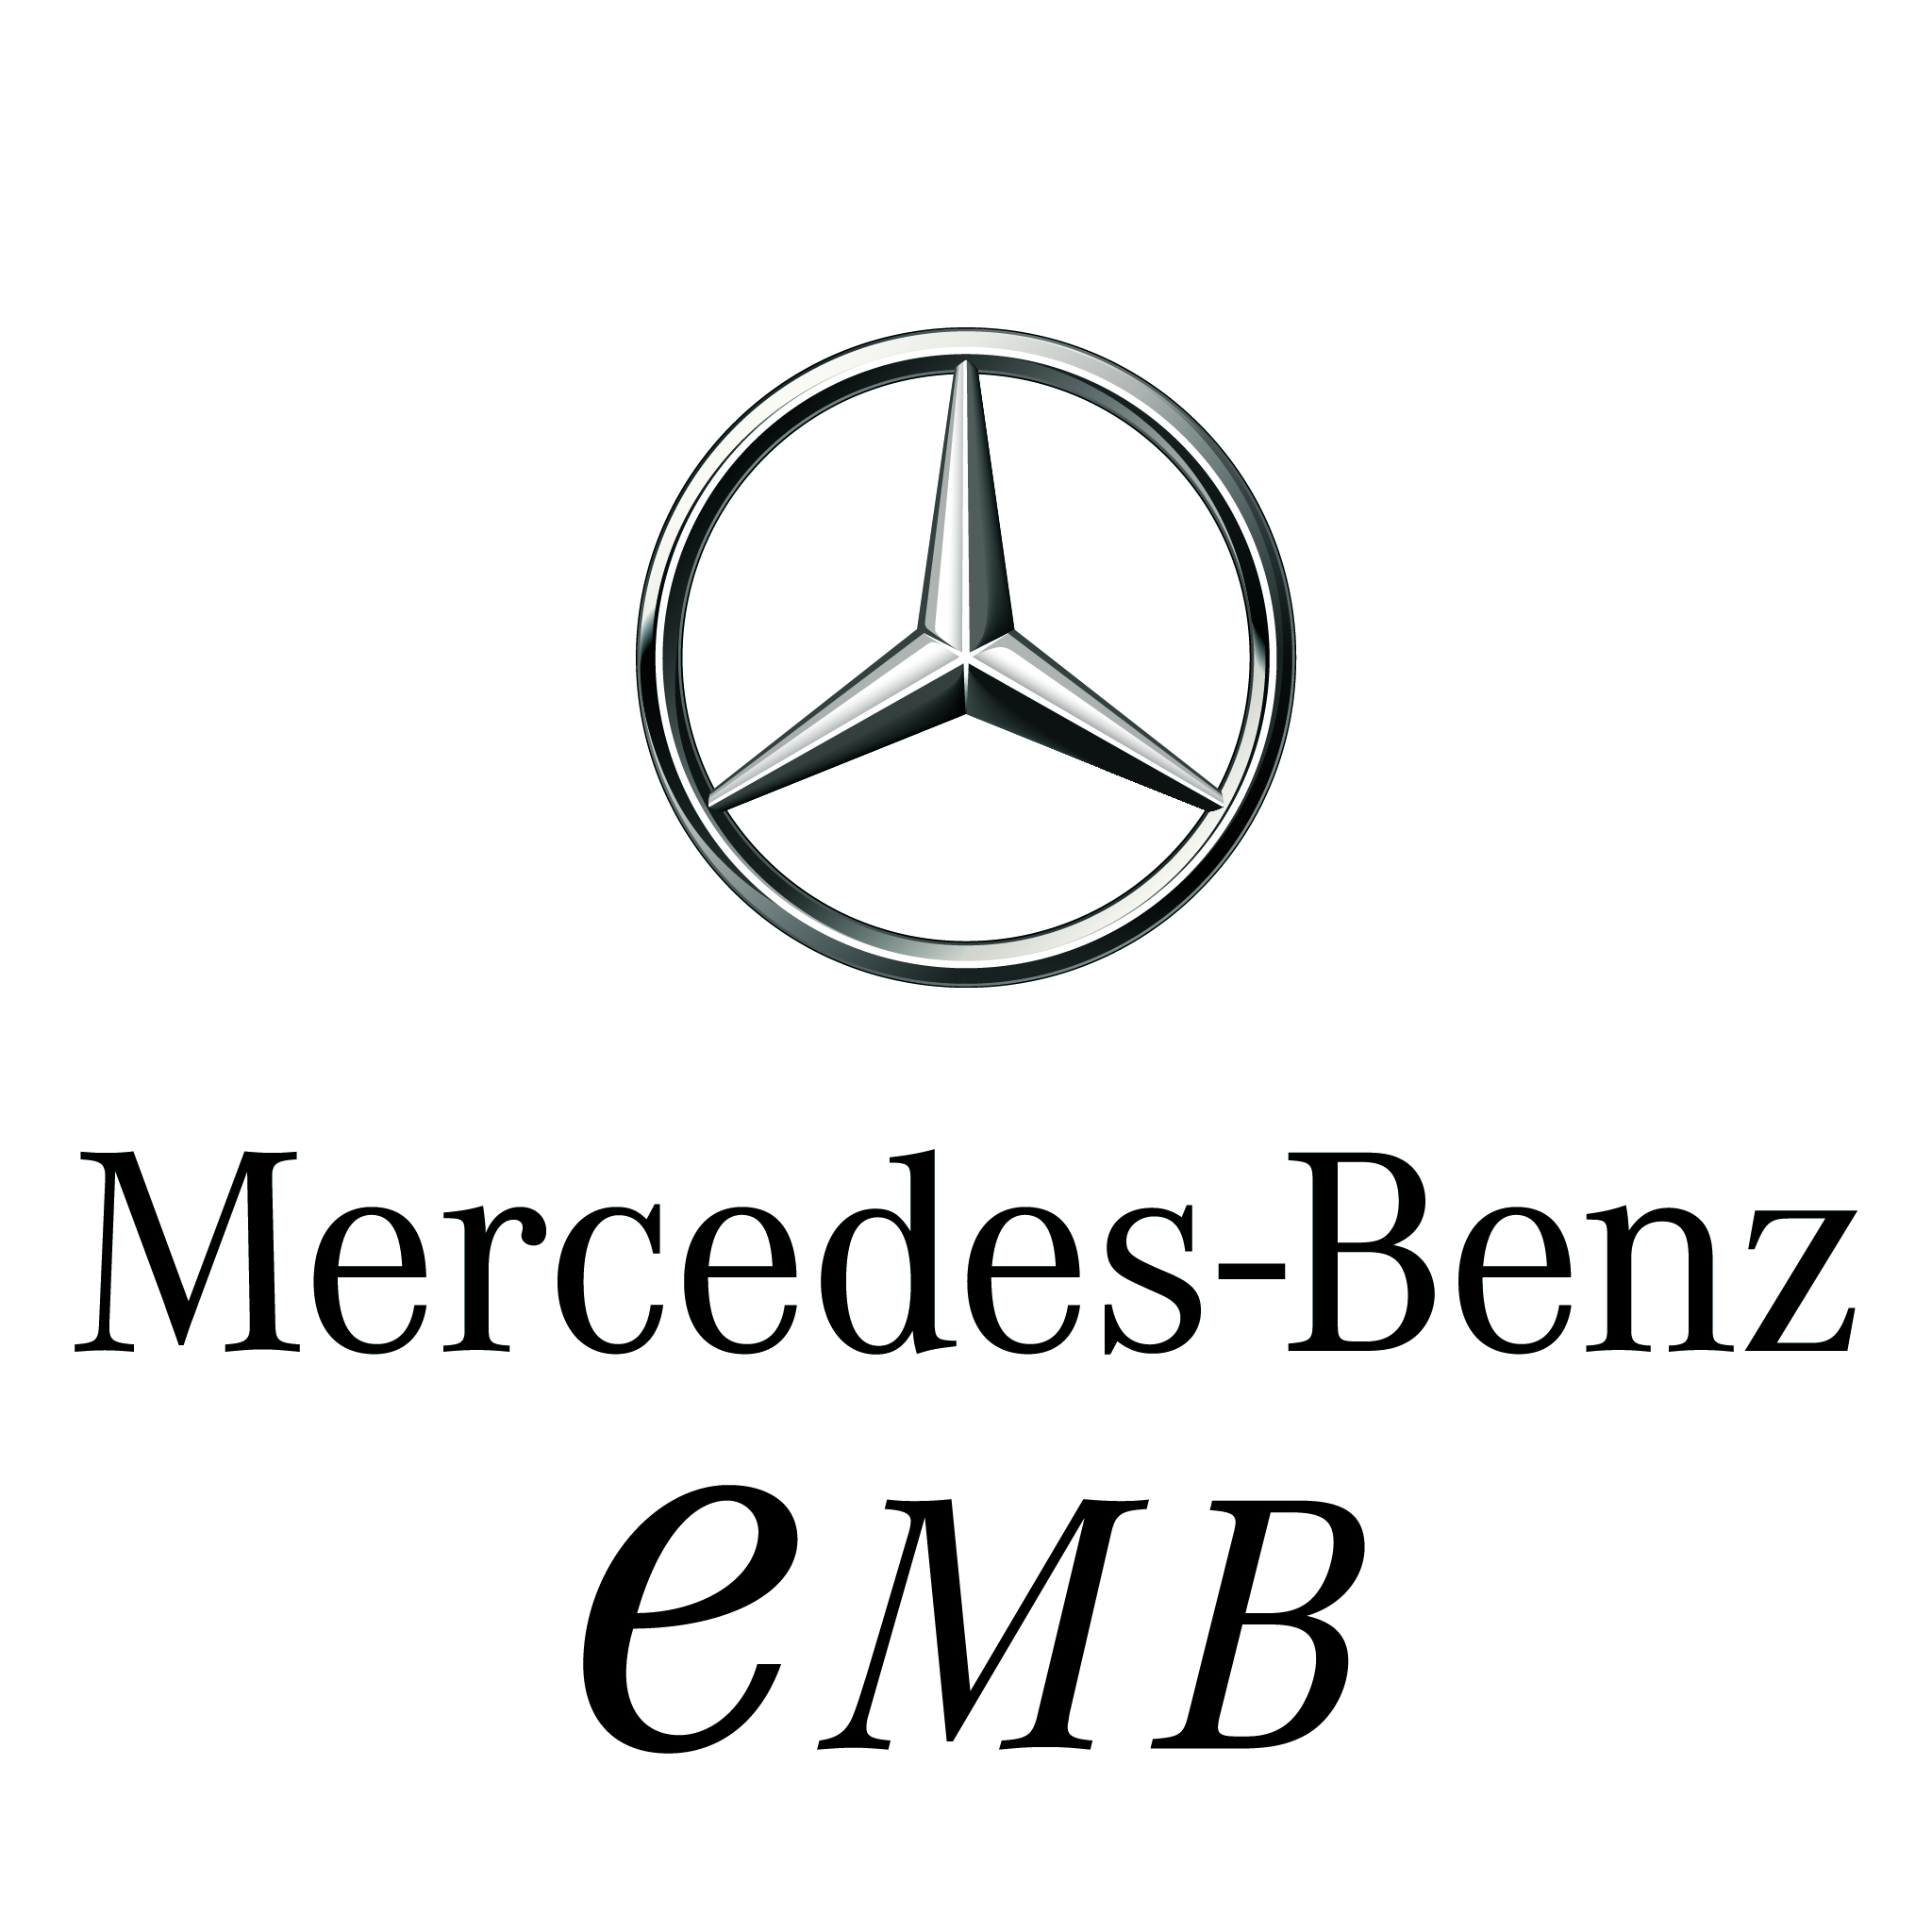 mercedes emb 73 chambery concessionnaire mercedes chambery auto occasion chambery. Black Bedroom Furniture Sets. Home Design Ideas